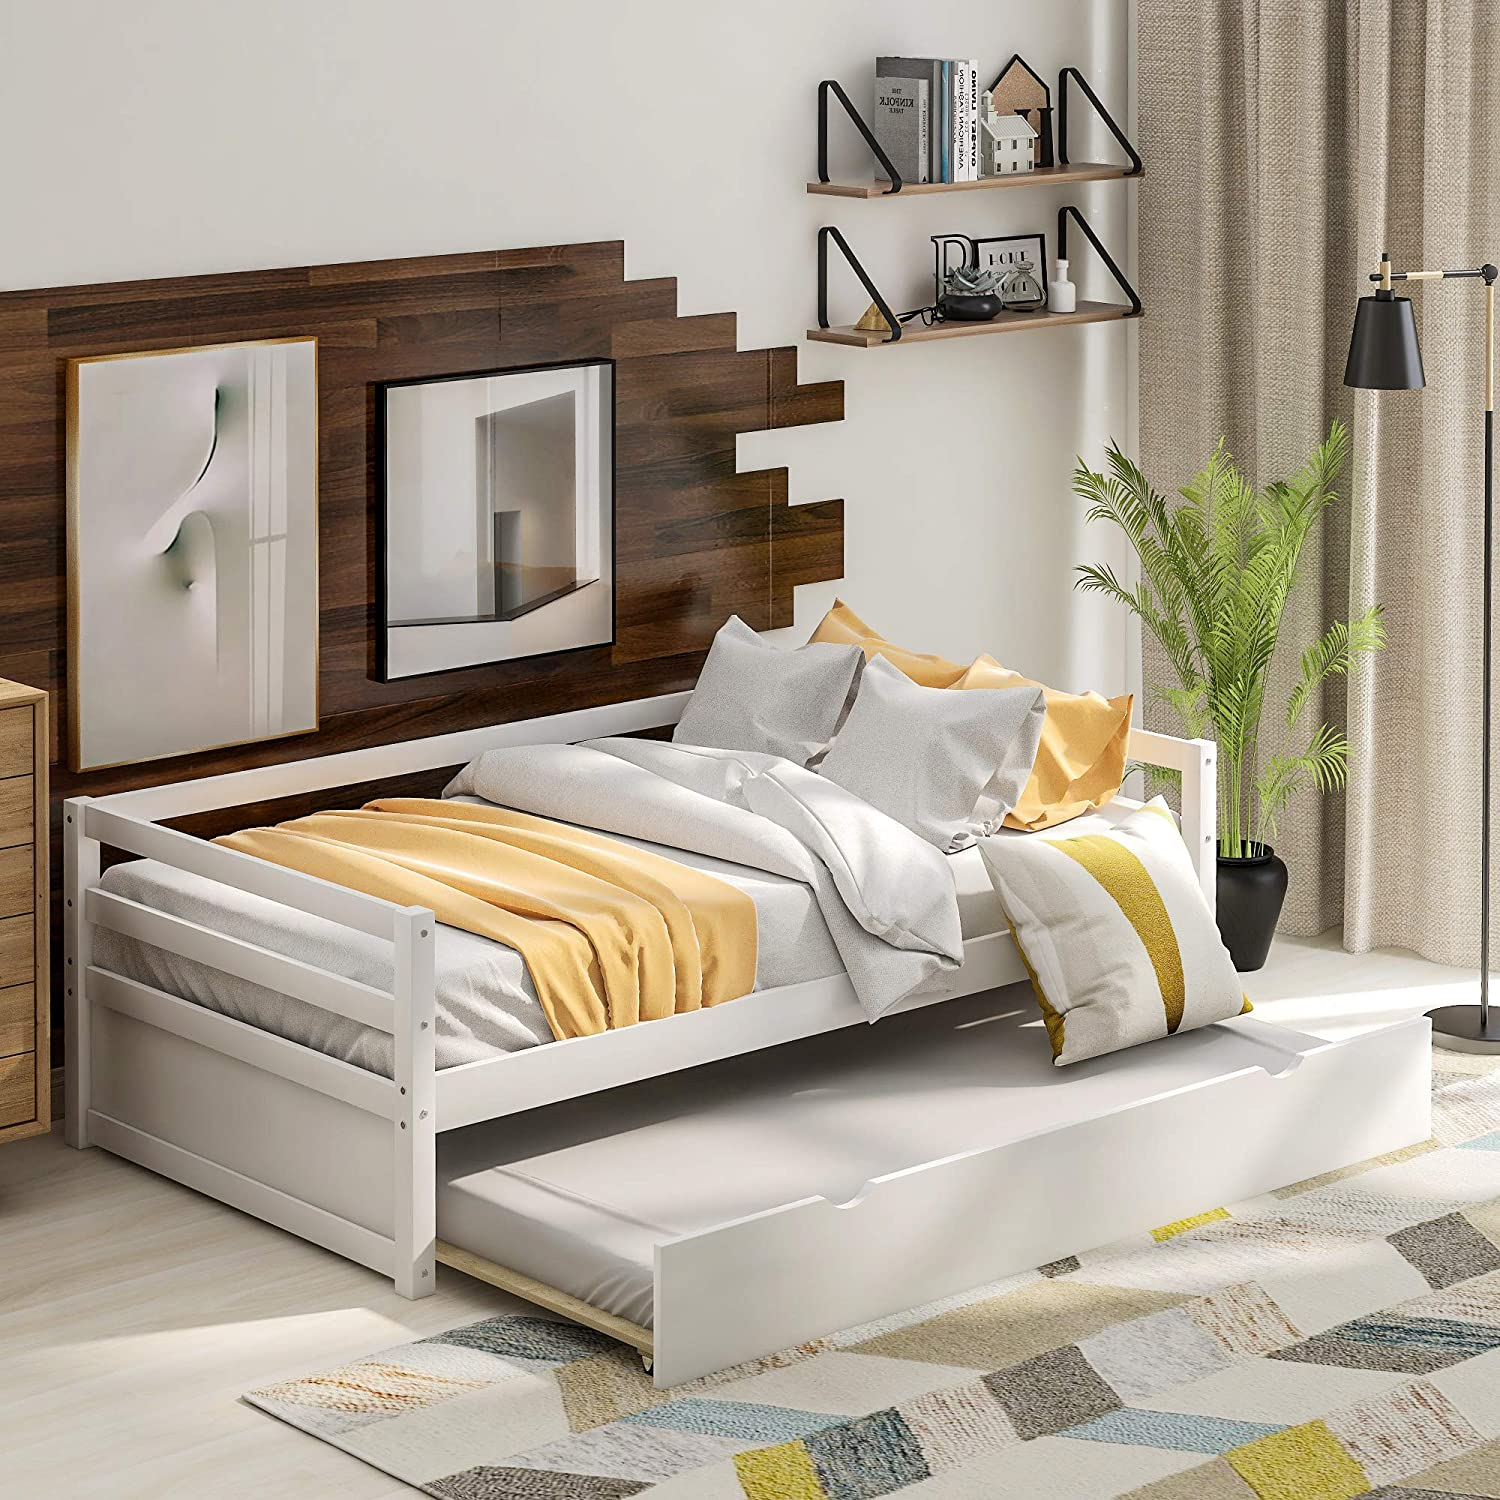 Solid Wood Frame Twin Daybed with Out Size 40% Max 68% OFF OFF Cheap Sale Tr Trundle Pull